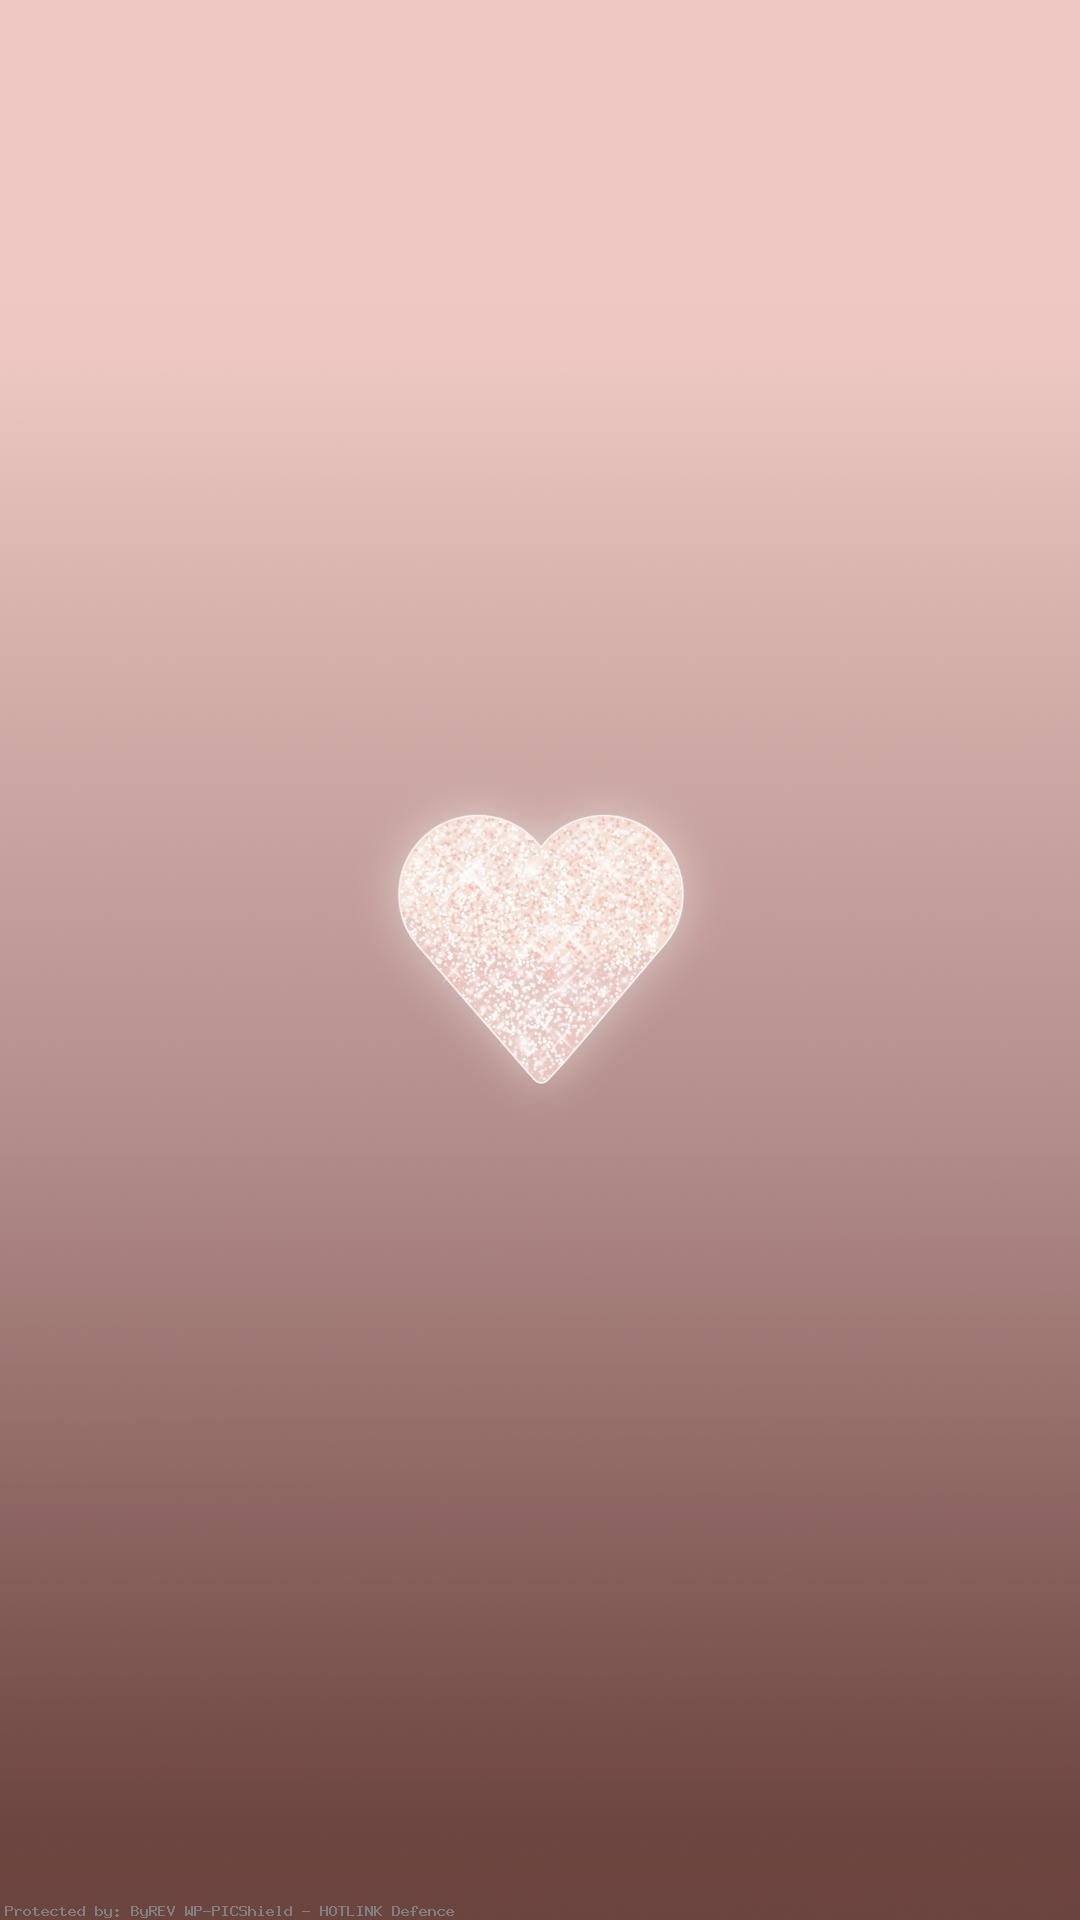 Rose-Gold-Heart-phone-background-lock-screen-wallpaper-